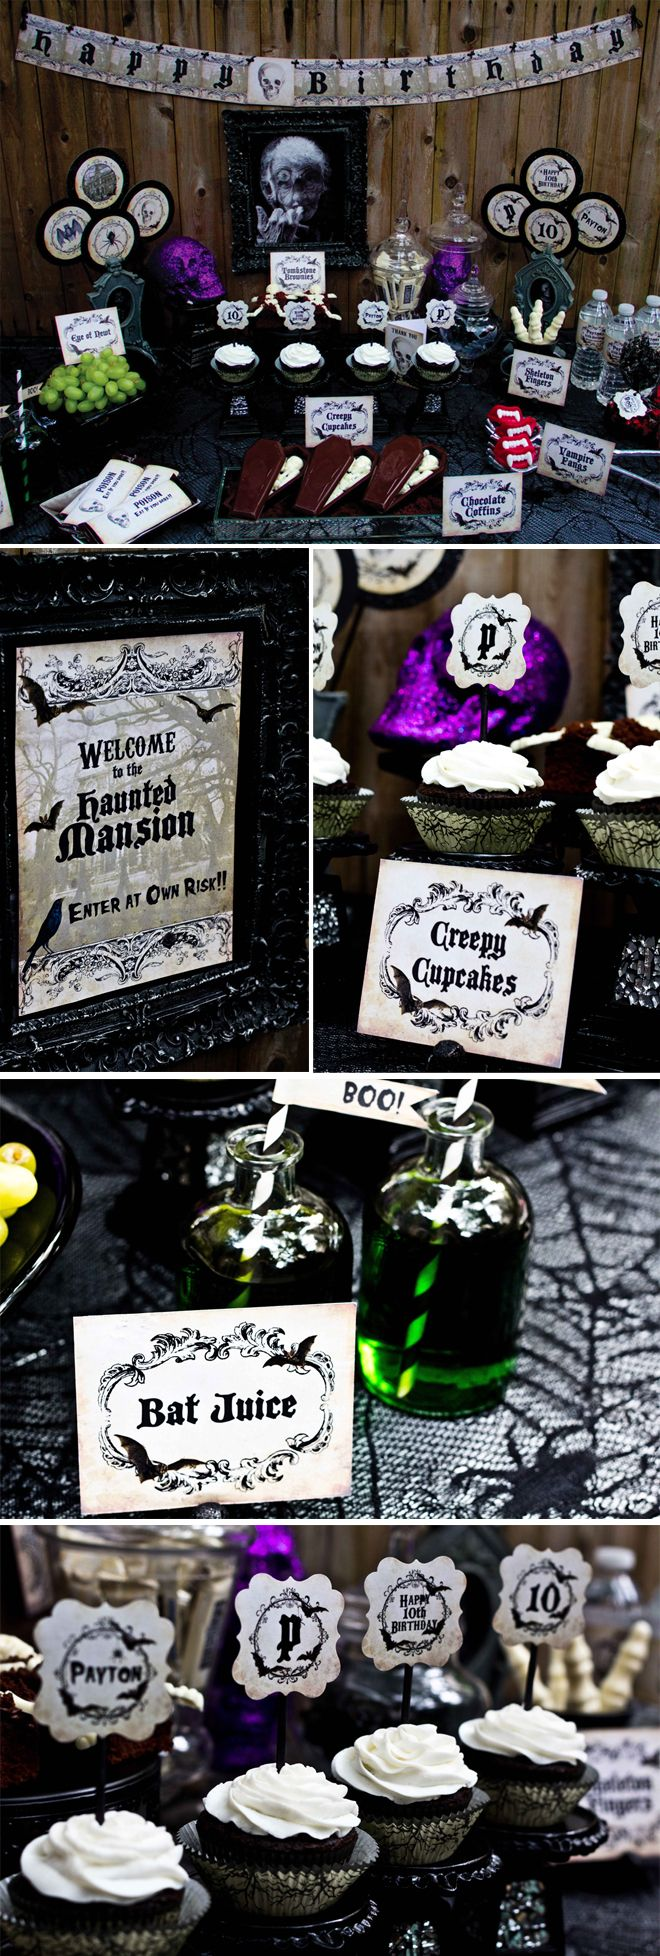 Best 20+ Happy birthday halloween ideas on Pinterest | Halloween ...